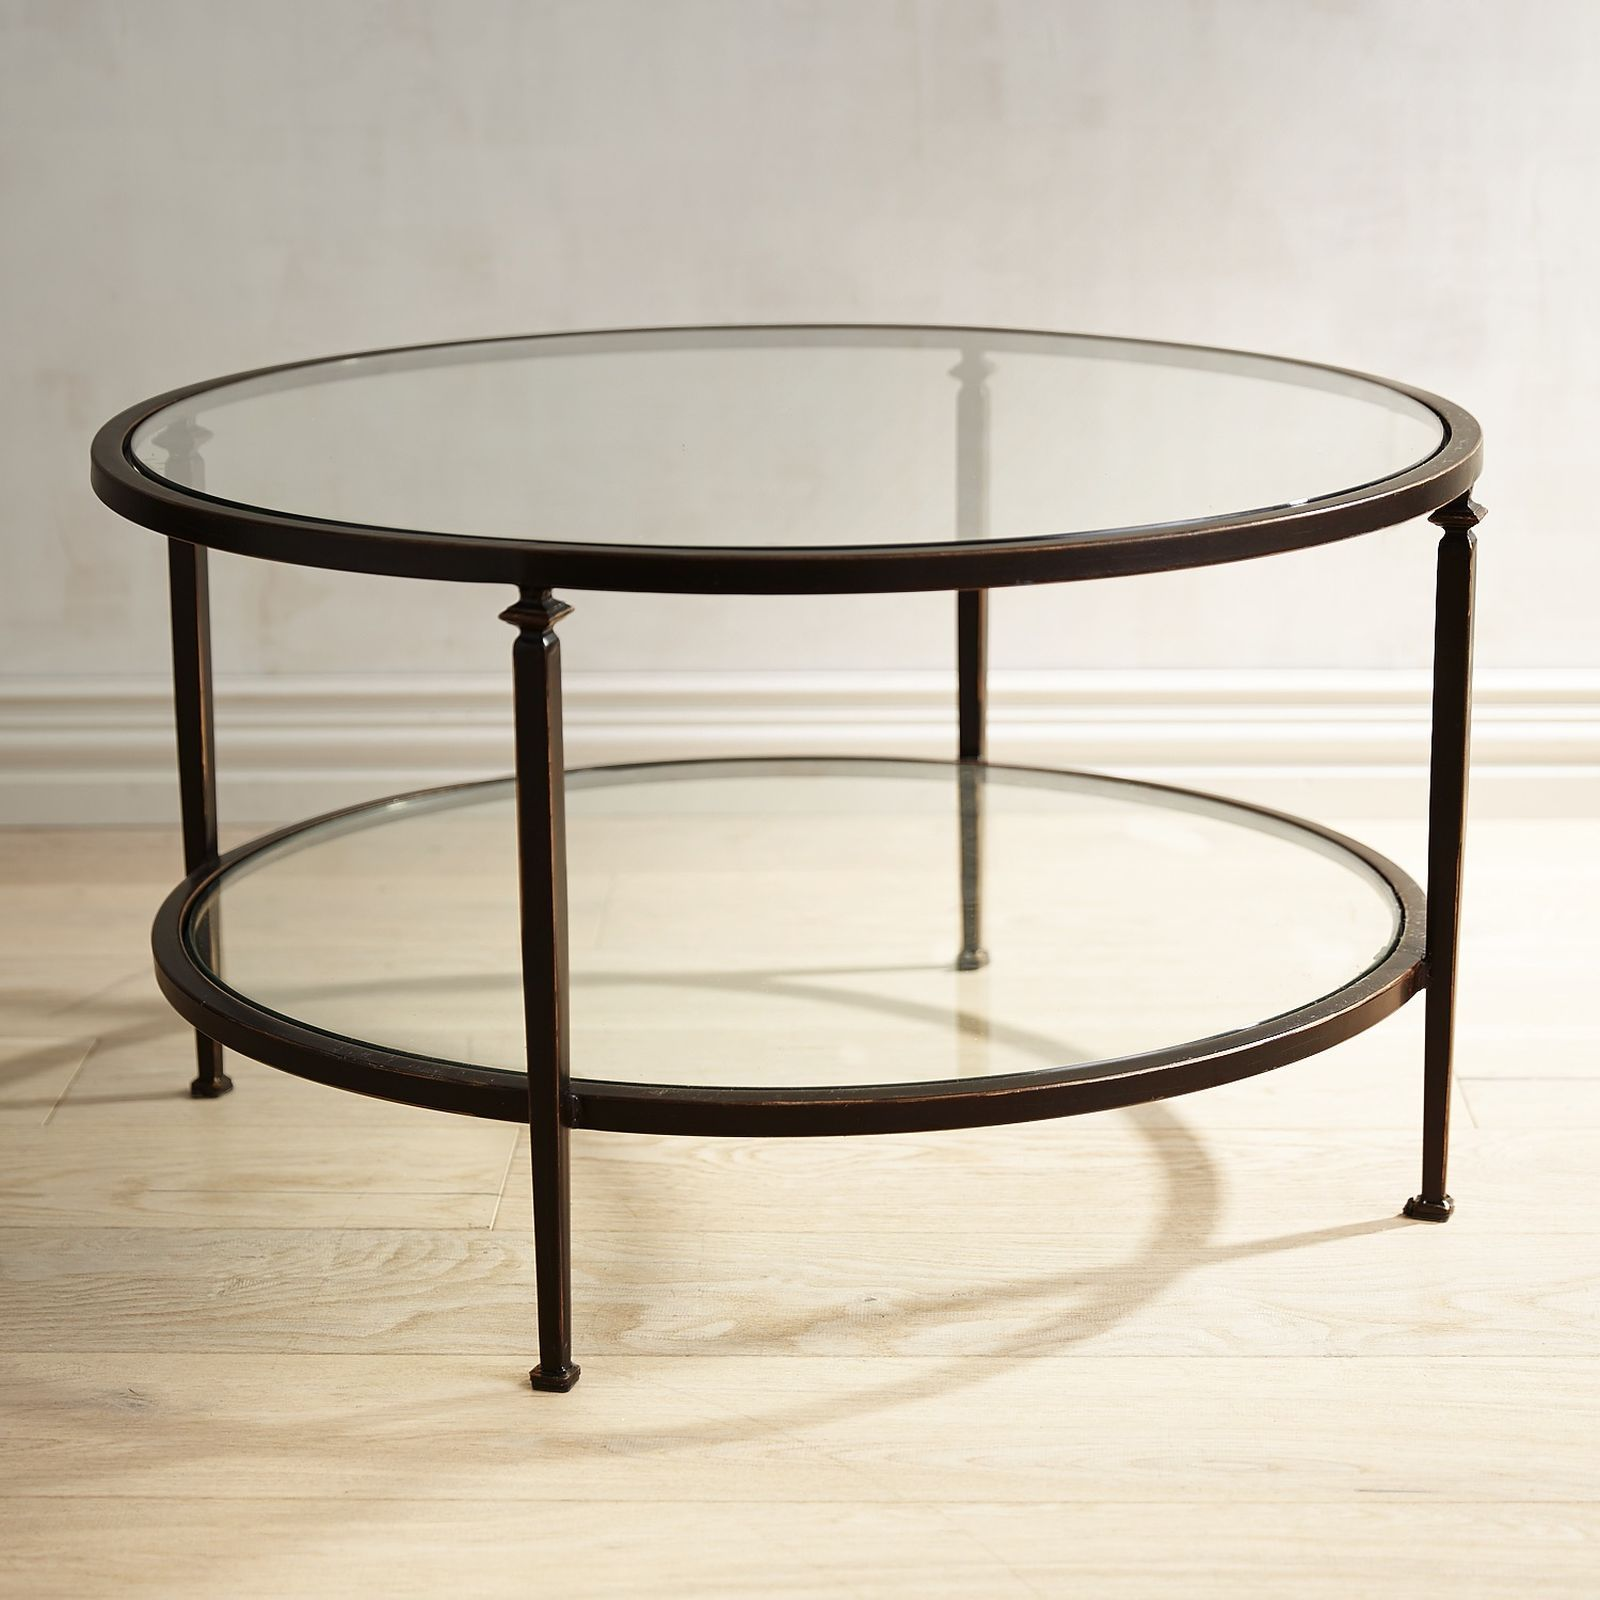 lincoln tempered glass top round coffee table inspiration office iron end tables with tops our has slender bronze wrought frame and clear adding visual space your room ashley sofa